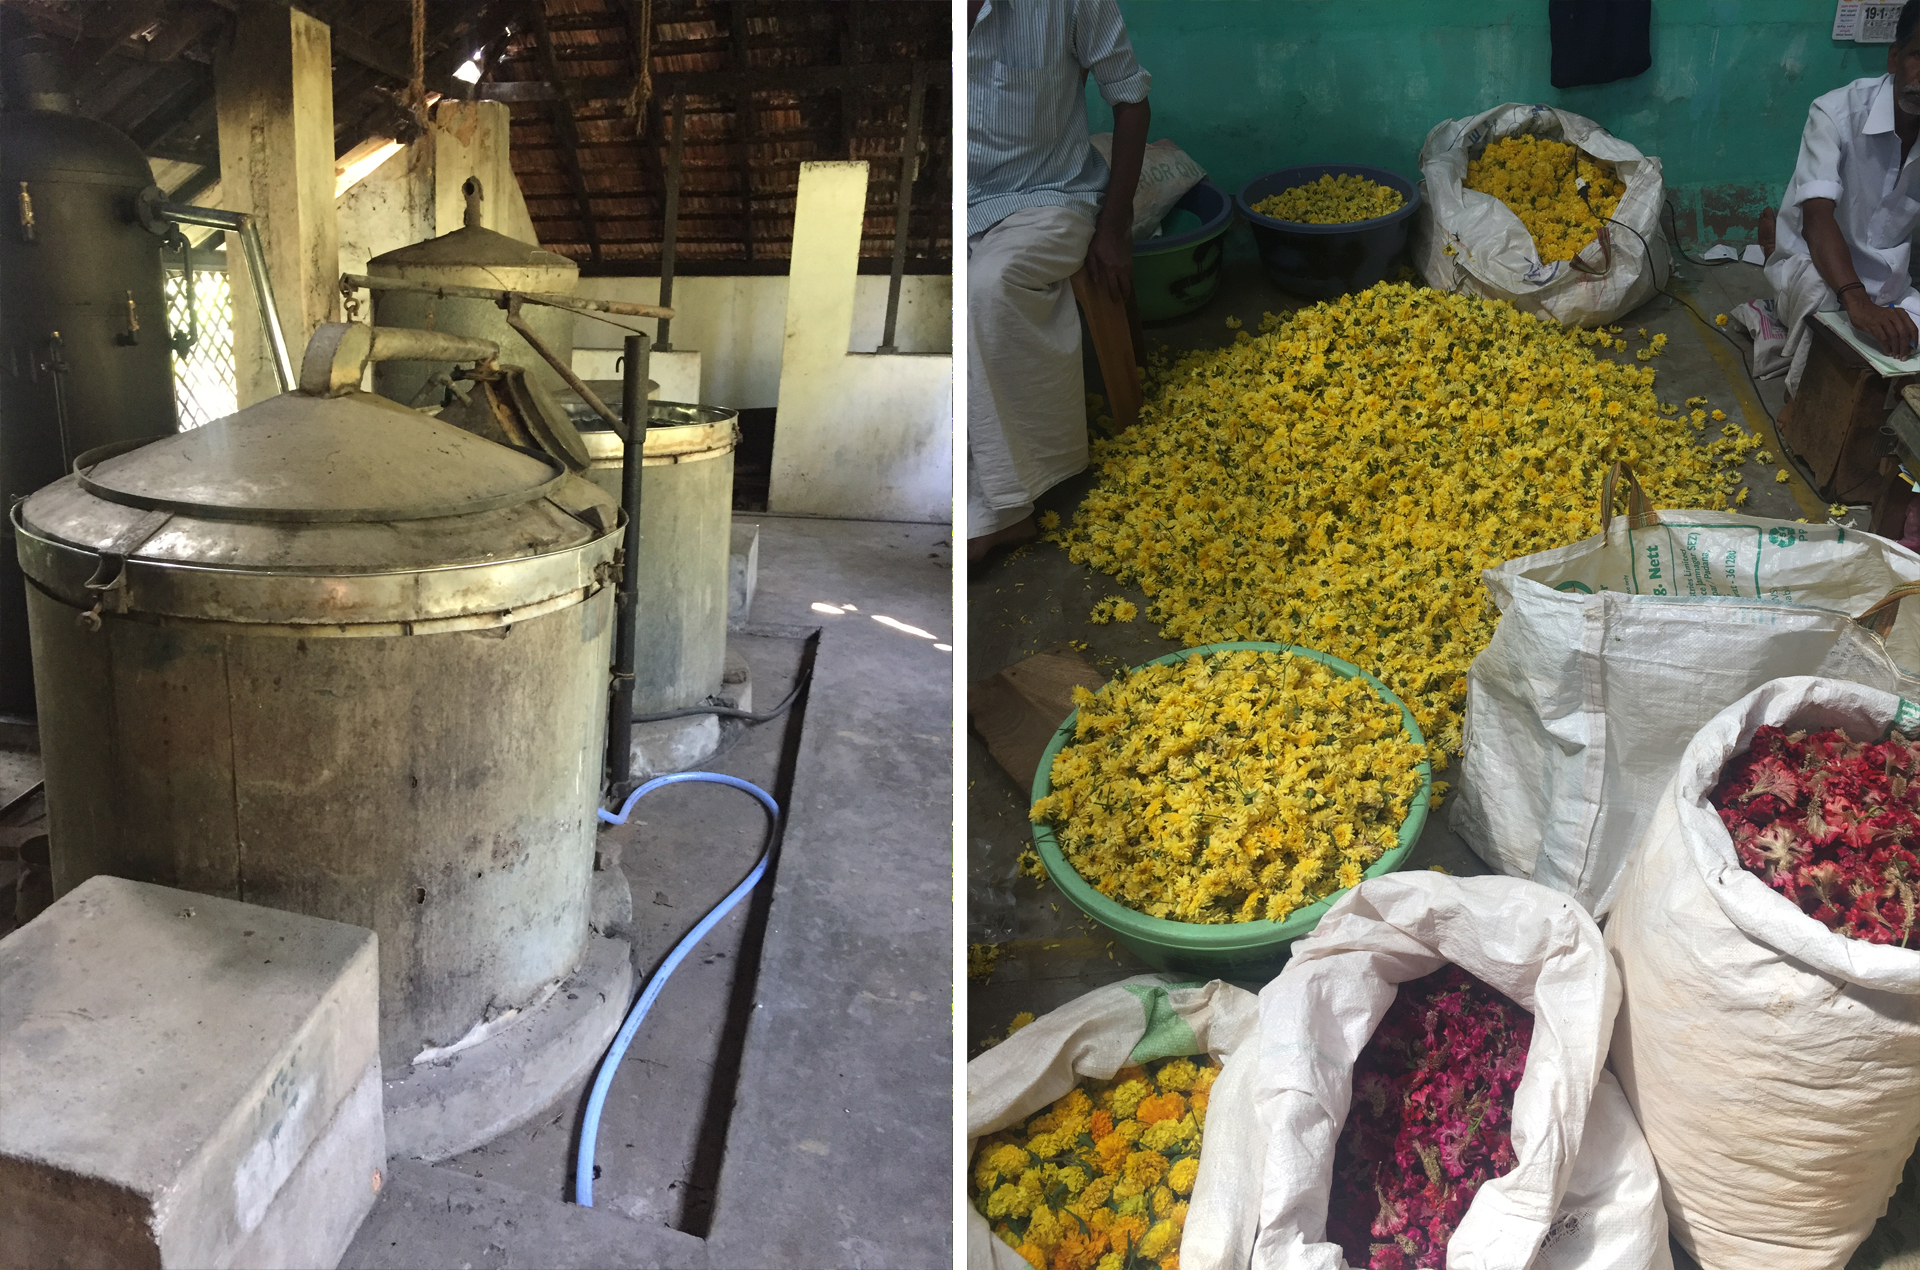 Natural Body Products   Distillation Units at Essential Oil Research Centre & Flower Market   Natural Bodycare Products